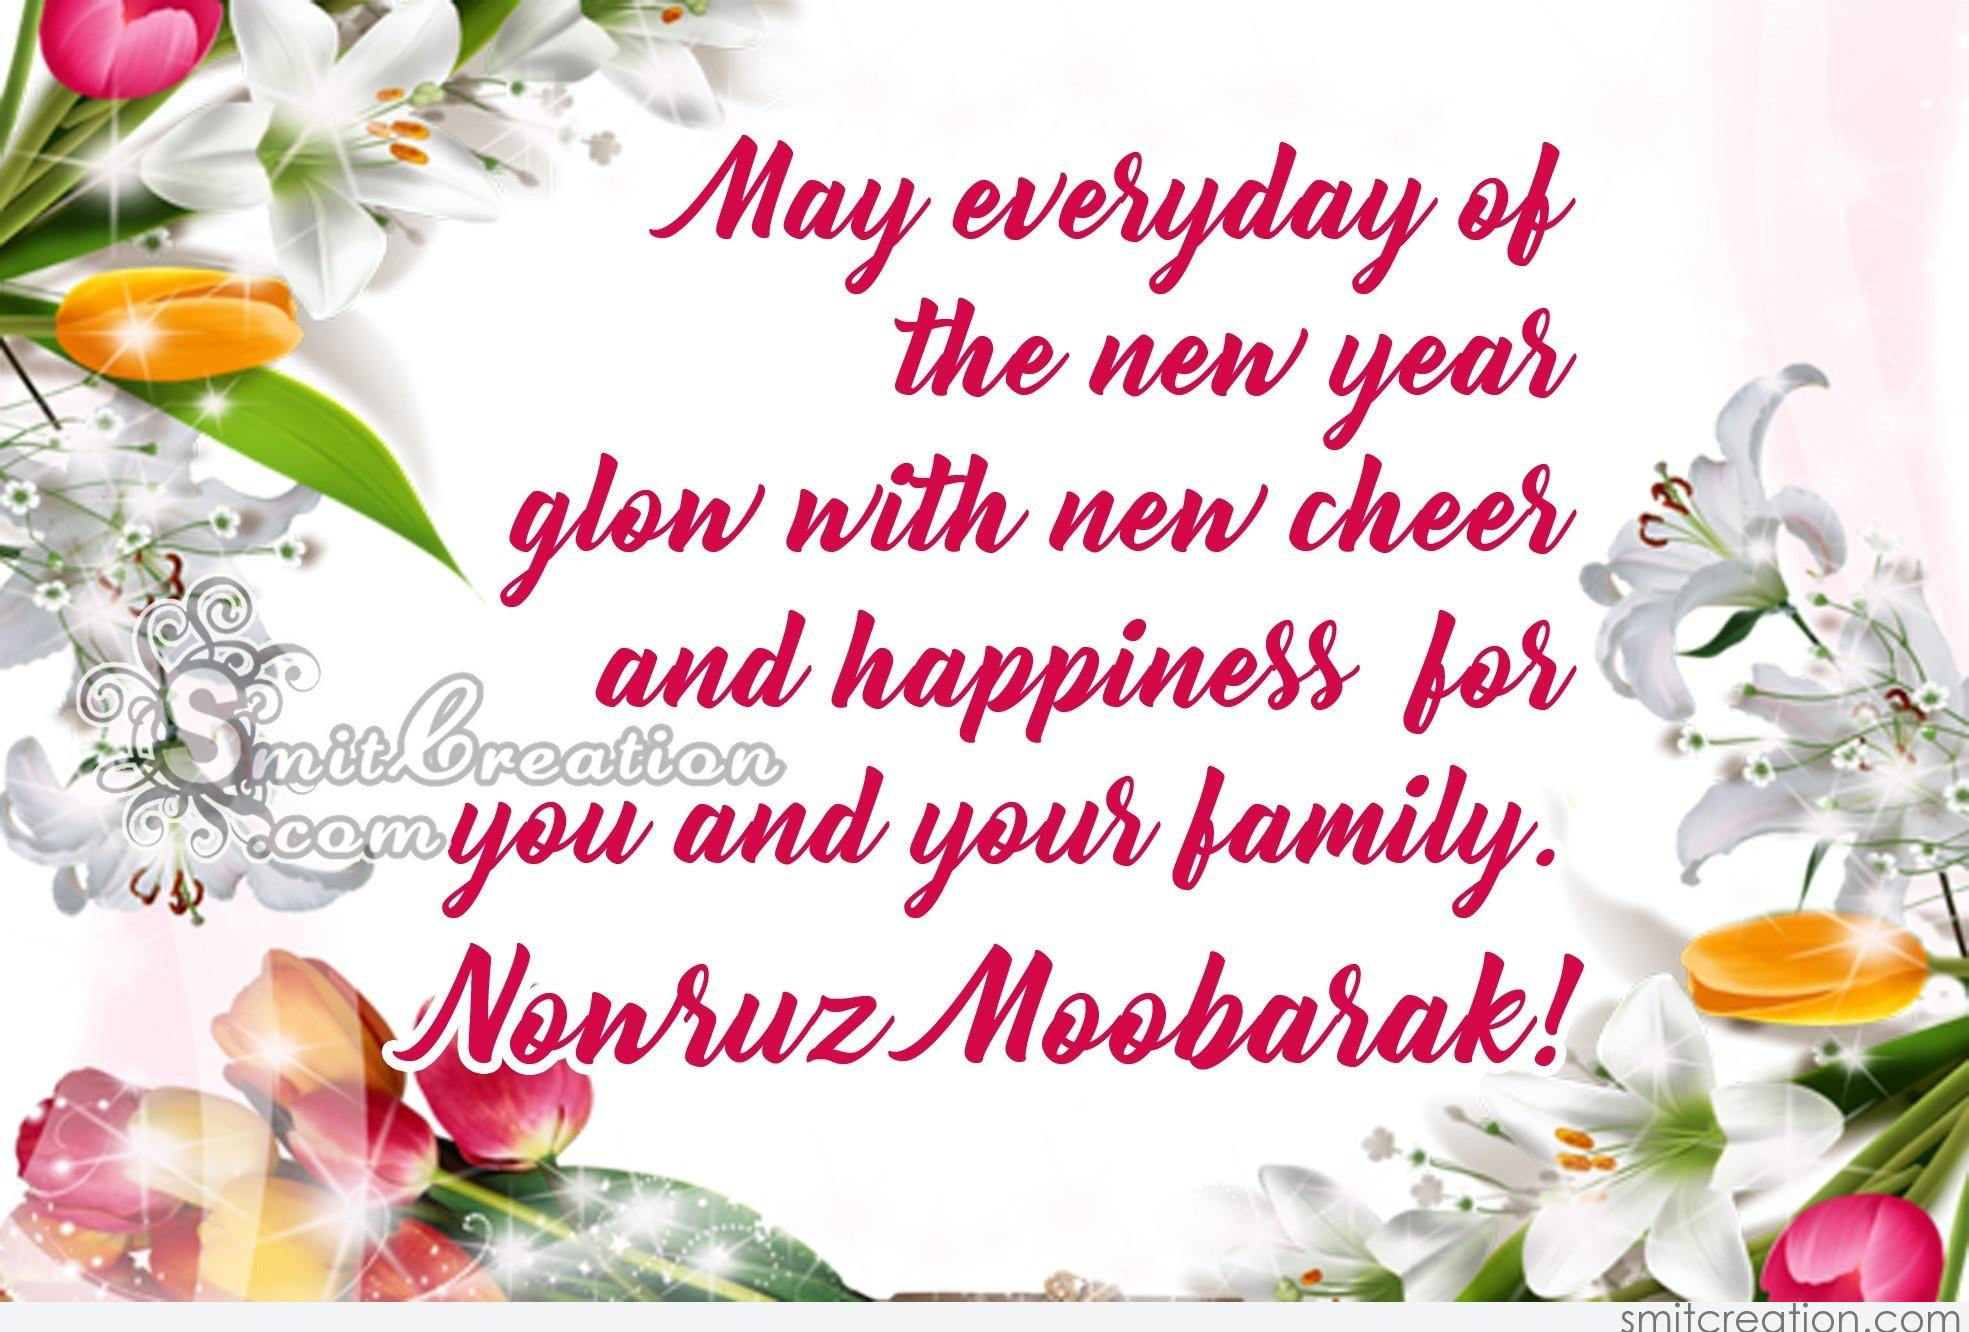 Nowruz moobarak smitcreation glow with new cheer and happiness for you and your family nowruz moobarak m4hsunfo